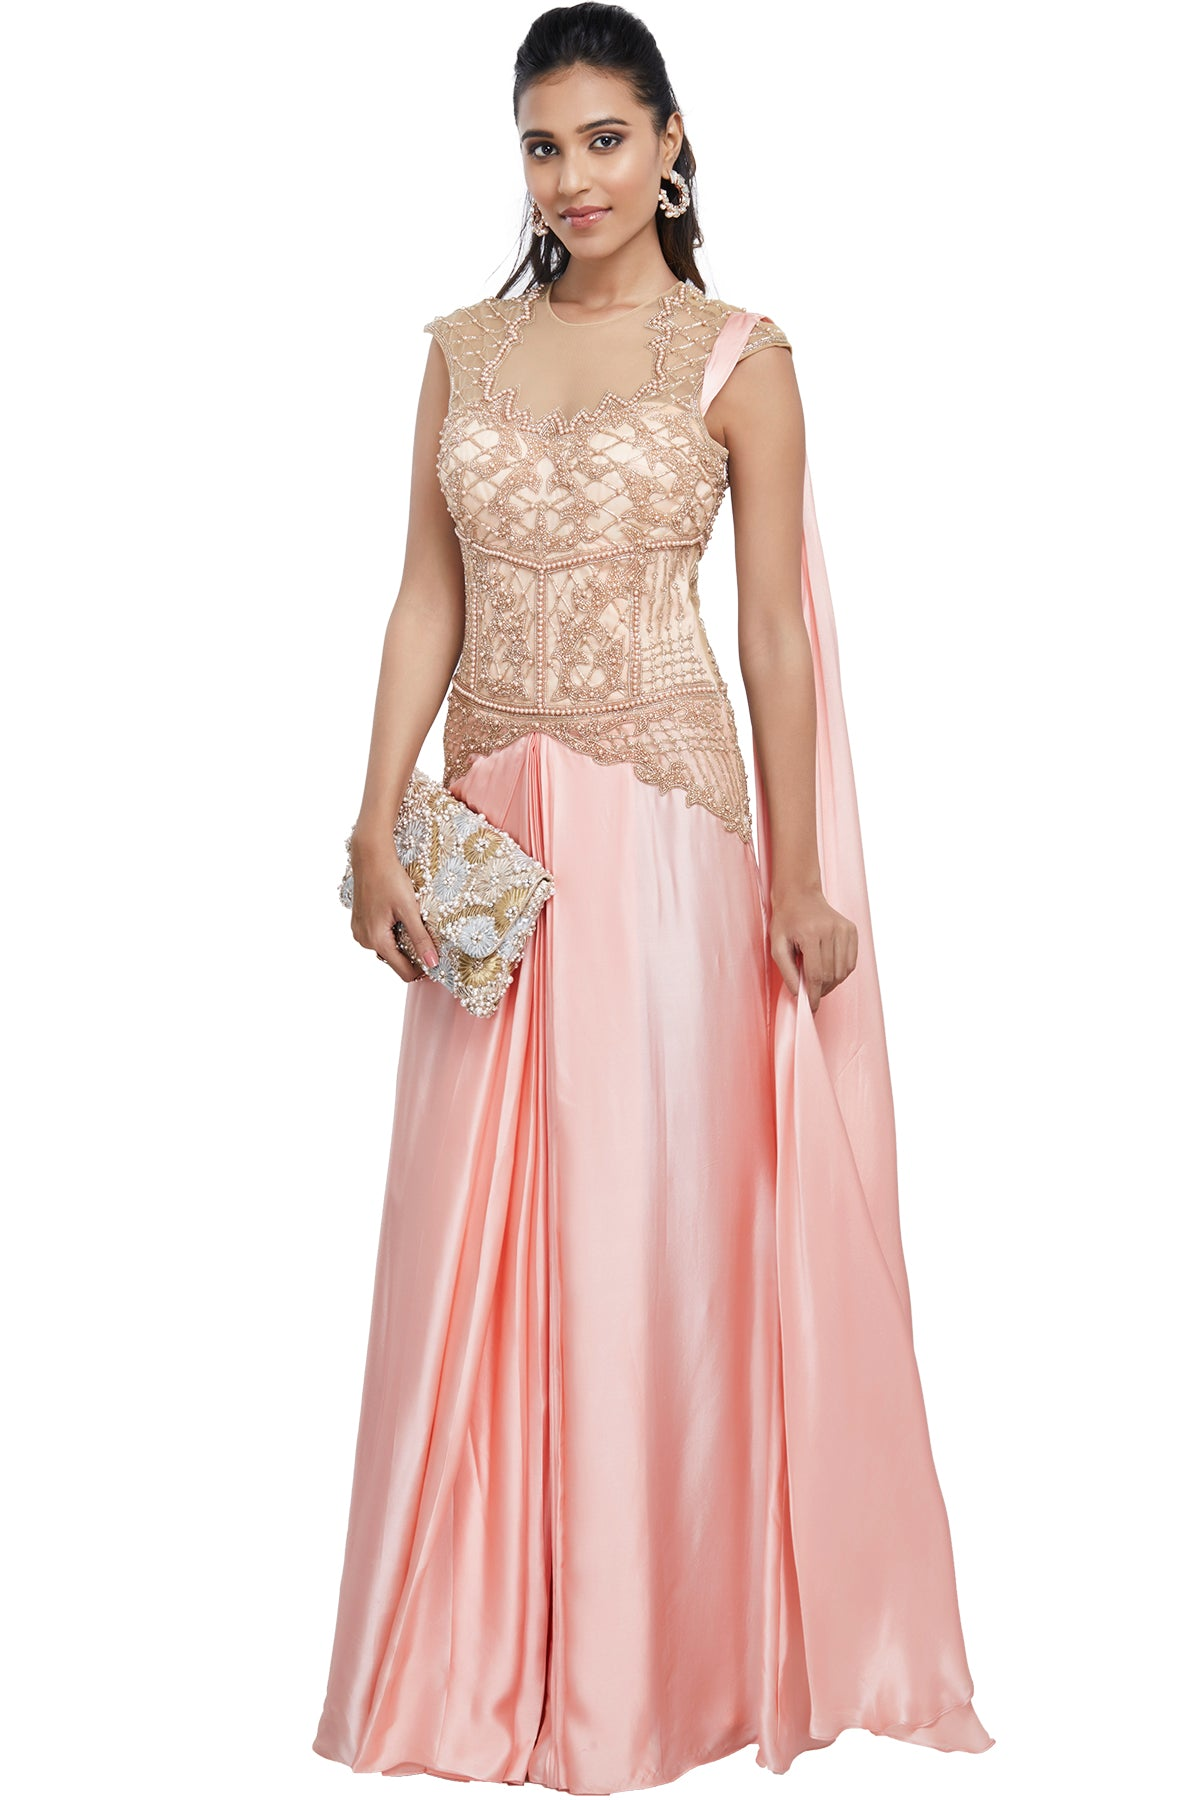 The epitome of east meets west, this baby pink soft net and cotton satin lehenga sari has a well-fitted, defining gold pearl & bead embroidered bodice. For your comfort, the outfit has a side zip and snap button closure on the shoulder.